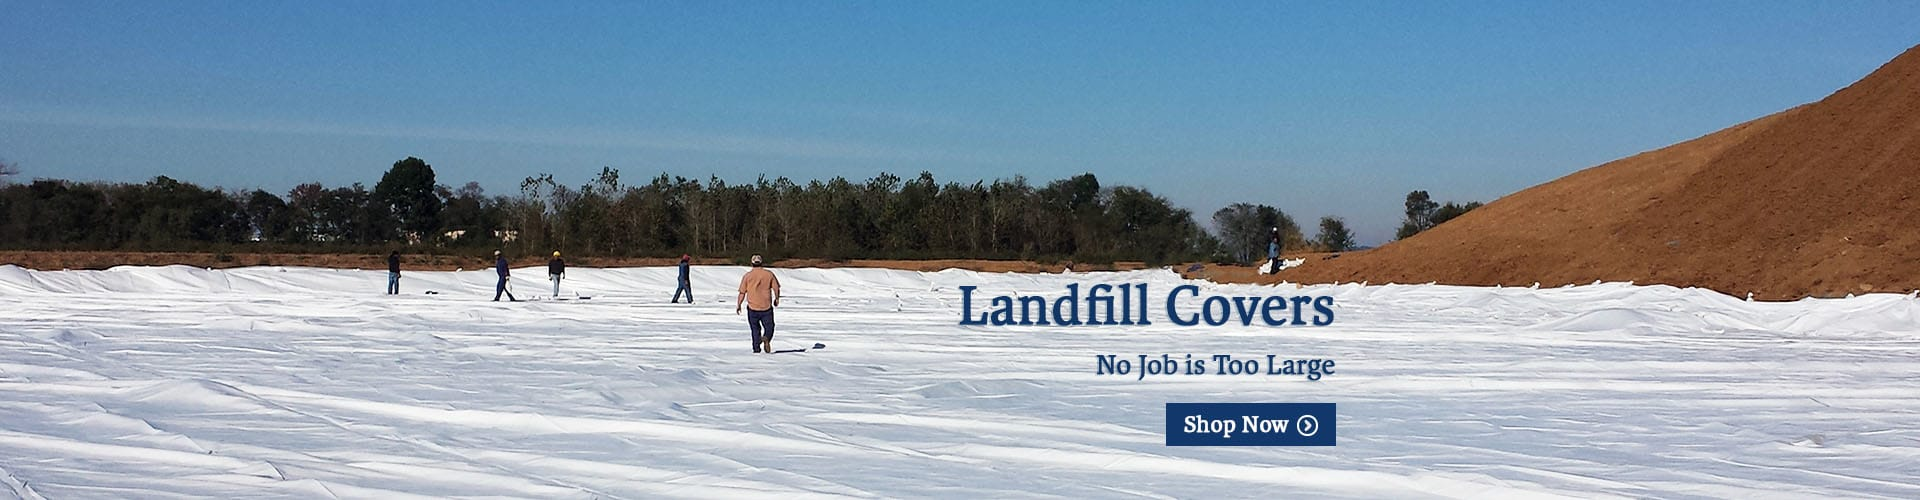 landfill covers - no job is too large